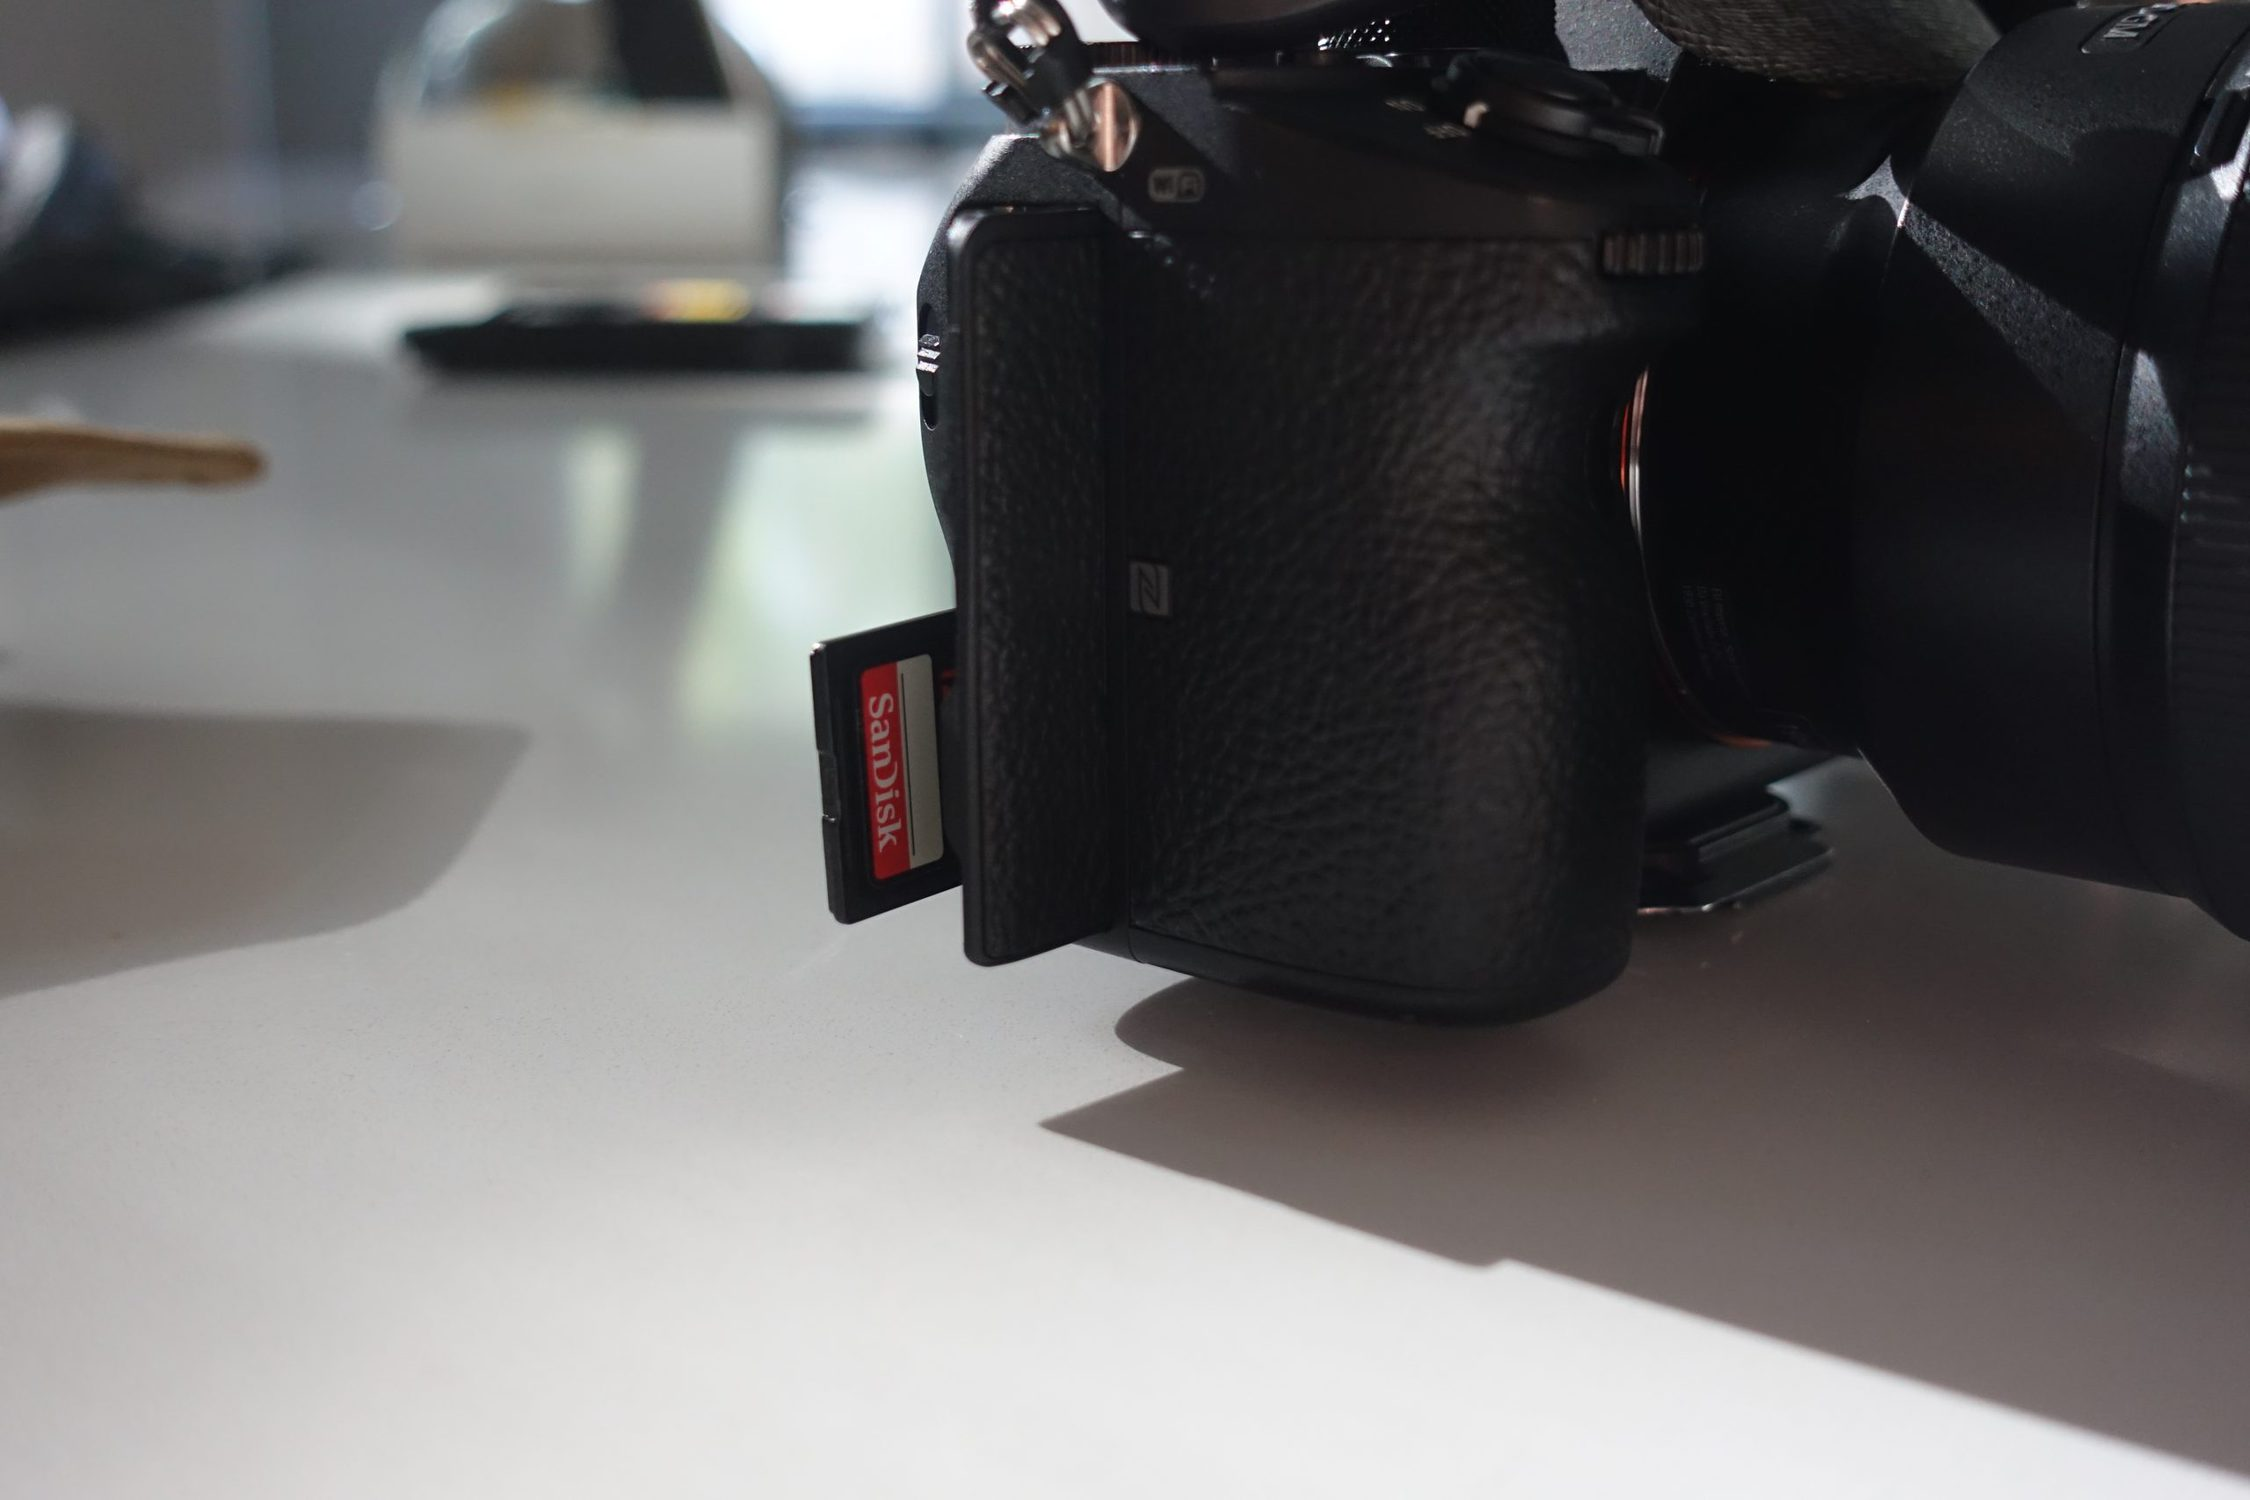 picture of sandisk sd card in camera